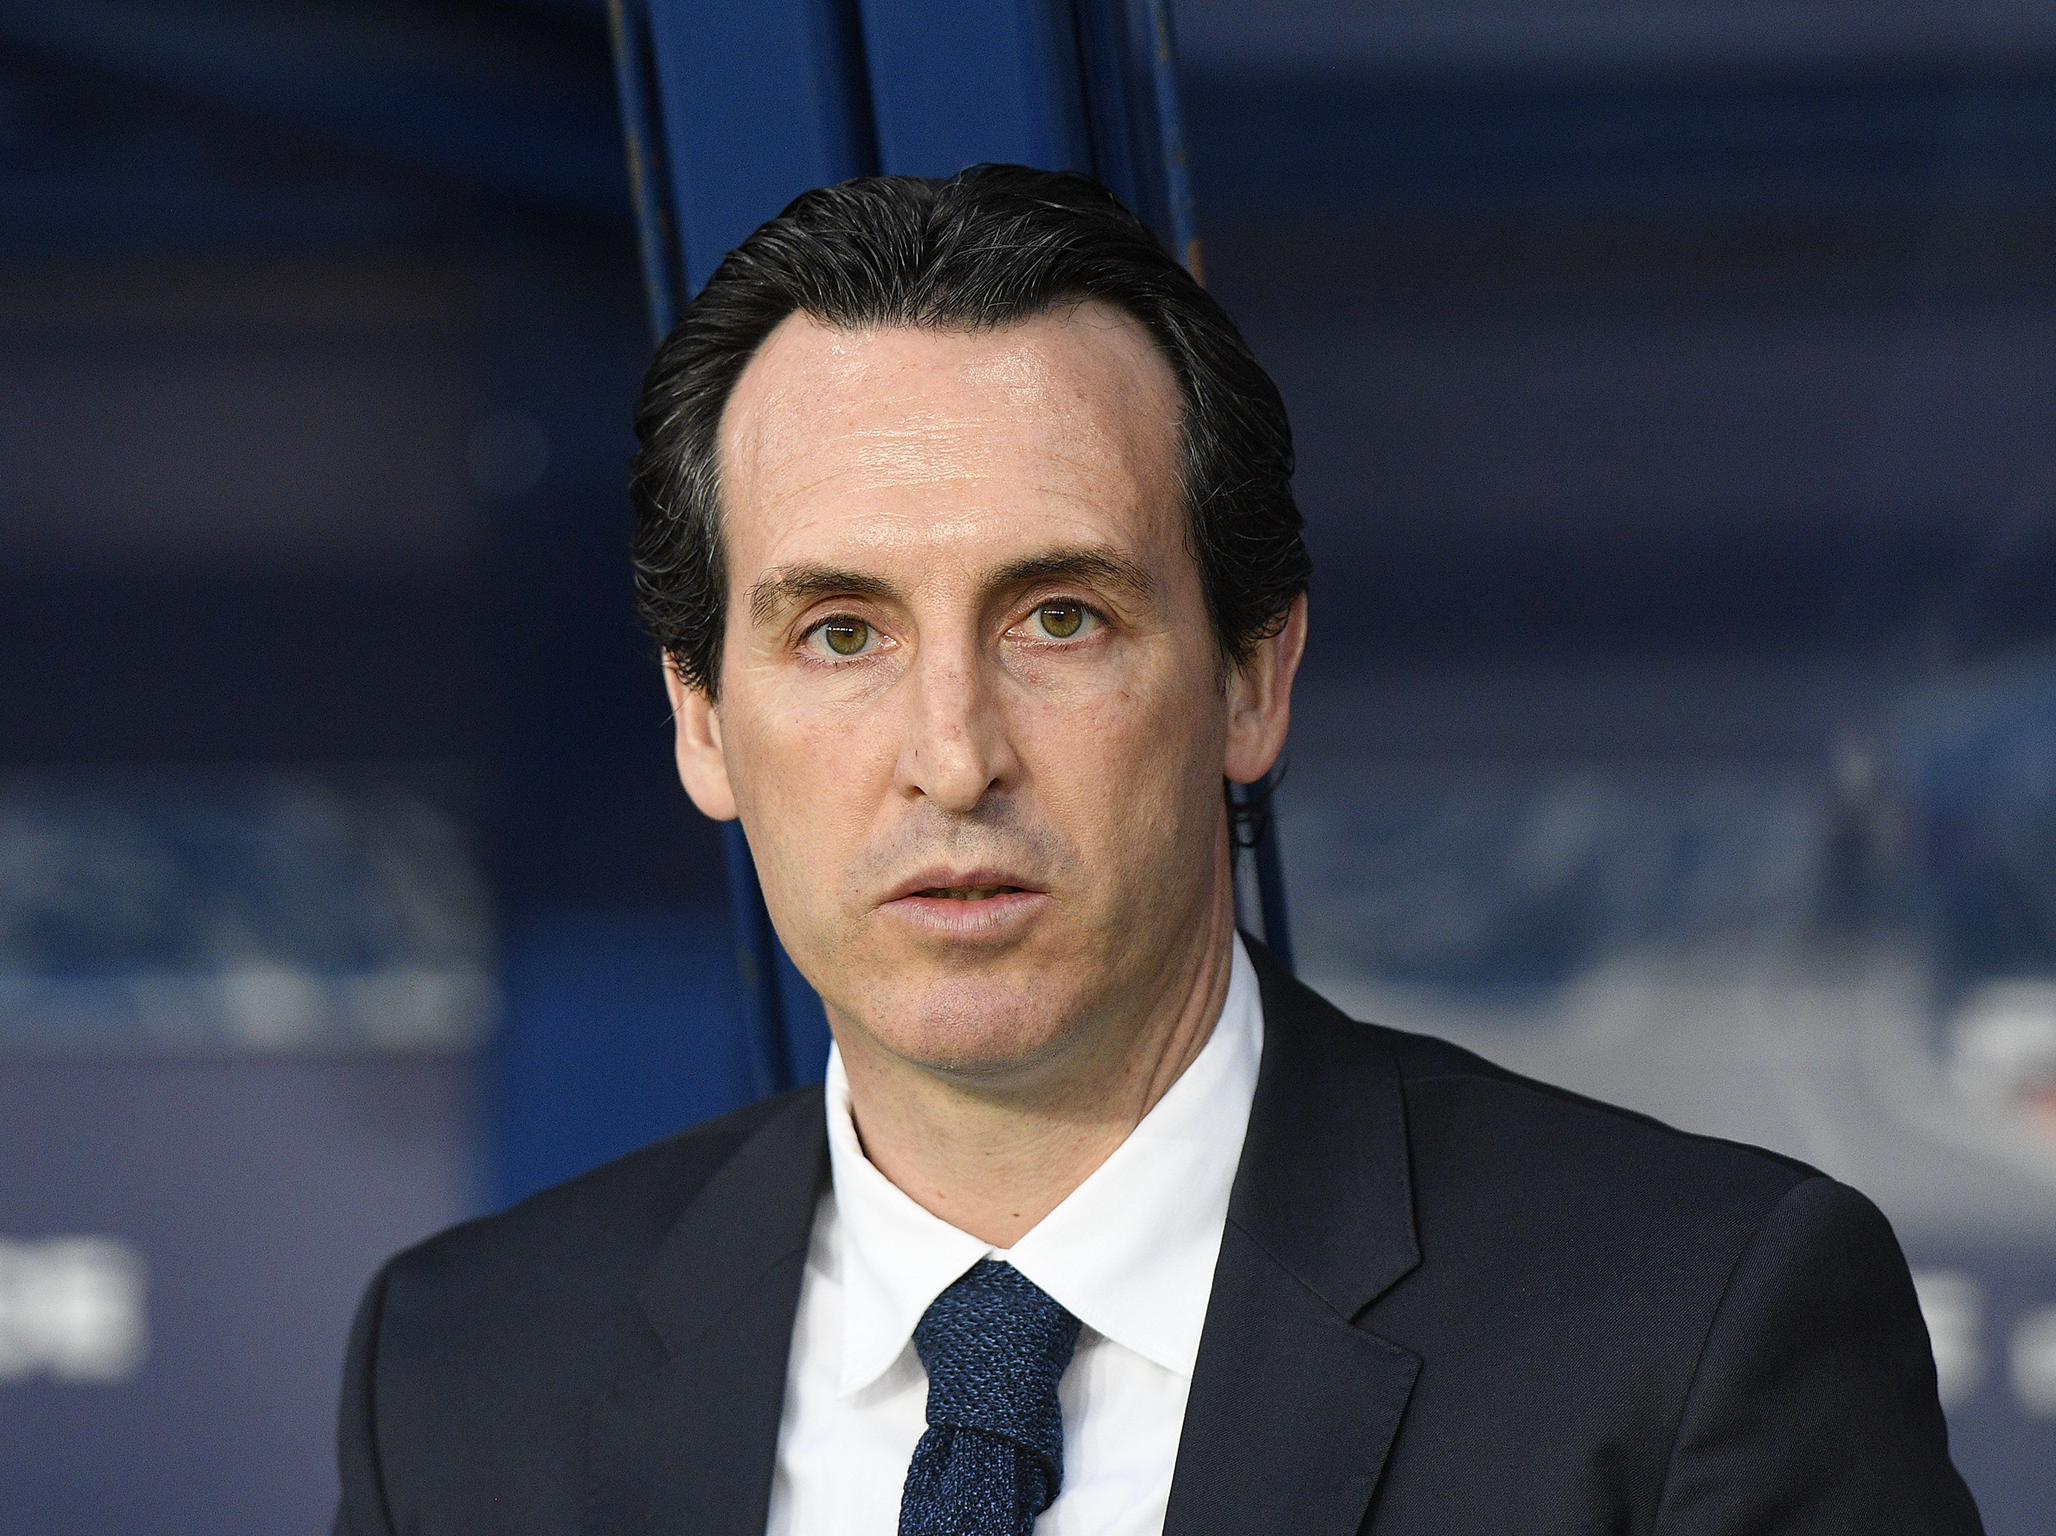 Unai Emery Set To Become Next Arsenal Manager After Mikel Arteta Talks Stall The Independent The Independent